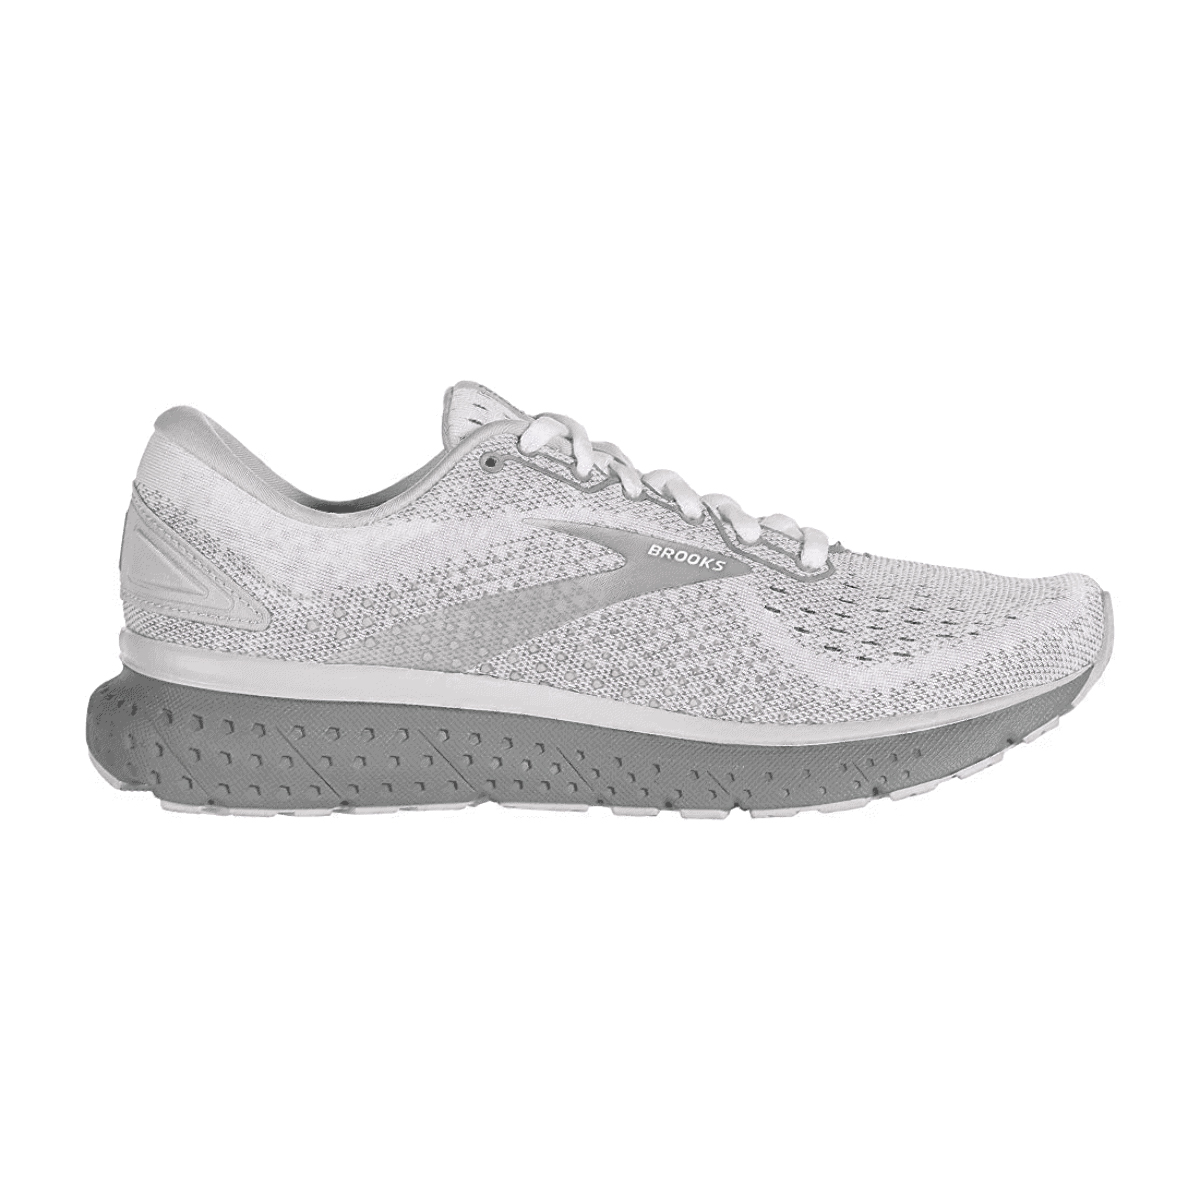 Women's Brooks Glycerin 18 Running Shoe - Color: White/Grey - Size: 5 - Width: Regular, White/Grey, large, image 1